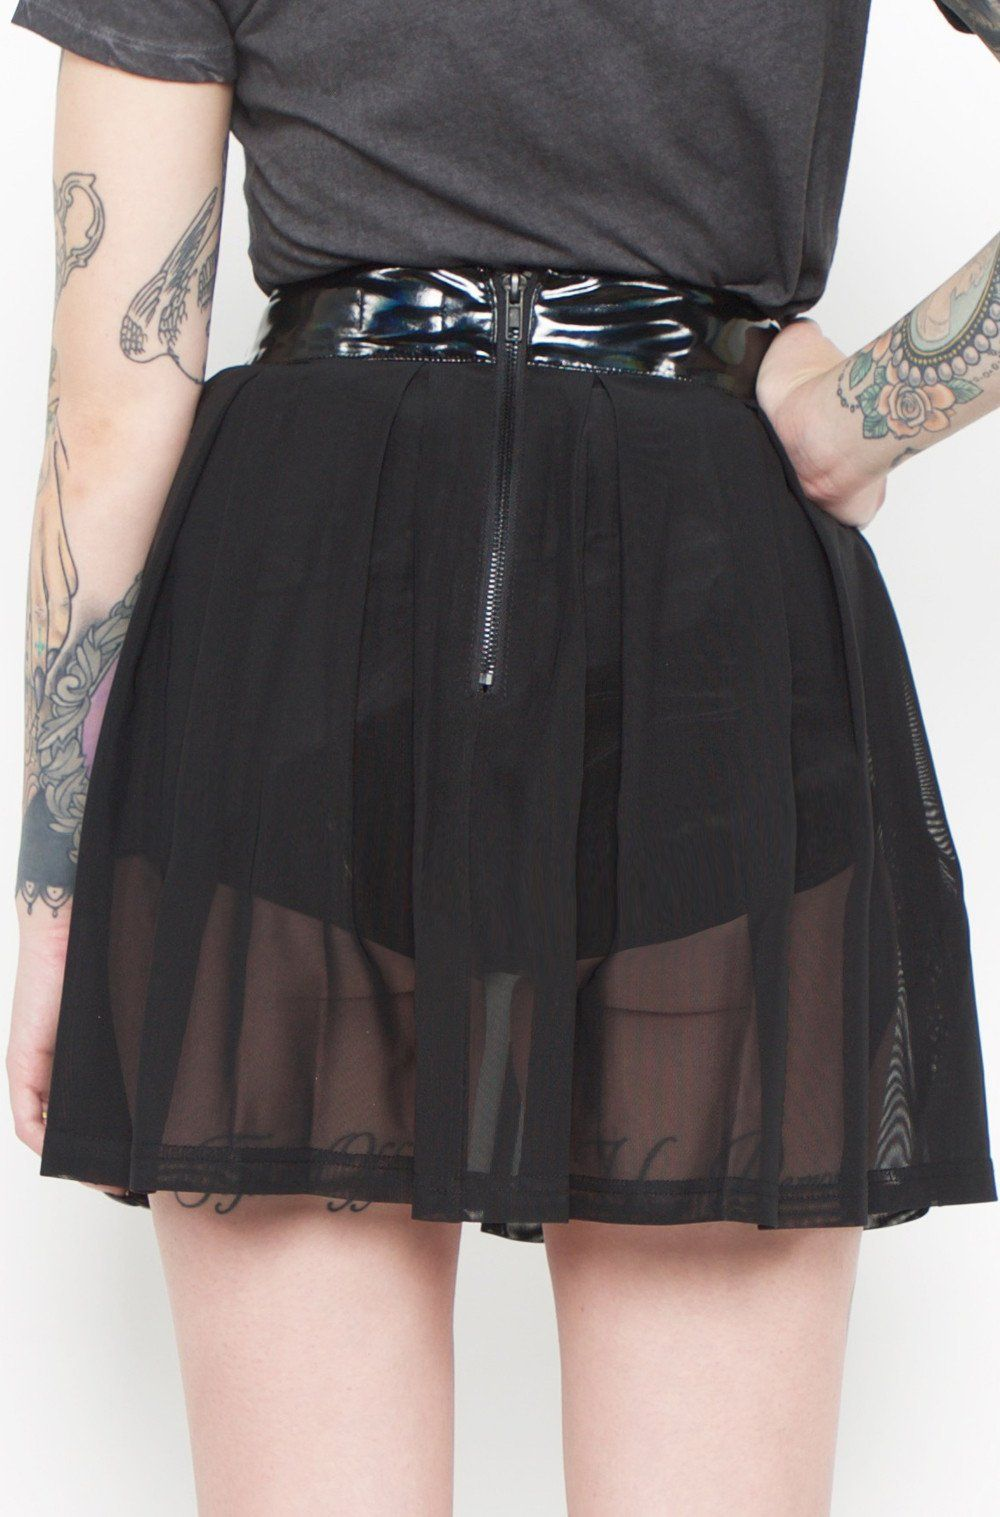 65ef04756e High Waisted Vinyl & Mesh Pleated Skirt Brand - 24 Hours Model is wearing X  Small. Made in China Waistband, 100% PU (92% Polyester 8% Spandex backing)  Skirt